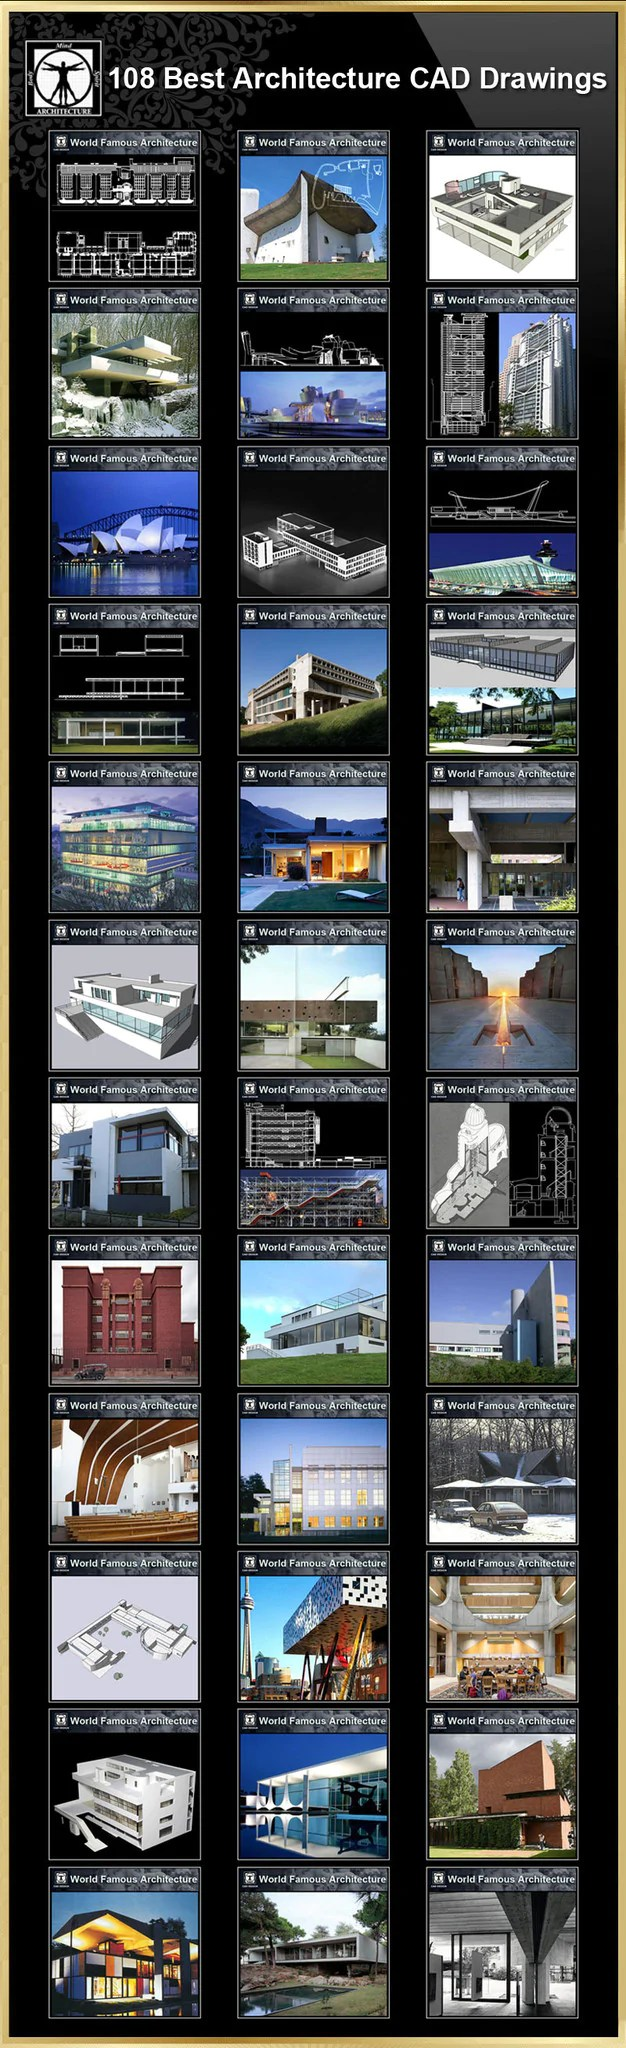 【108 Best Architecture CAD Drawings】(Best Collections!!)